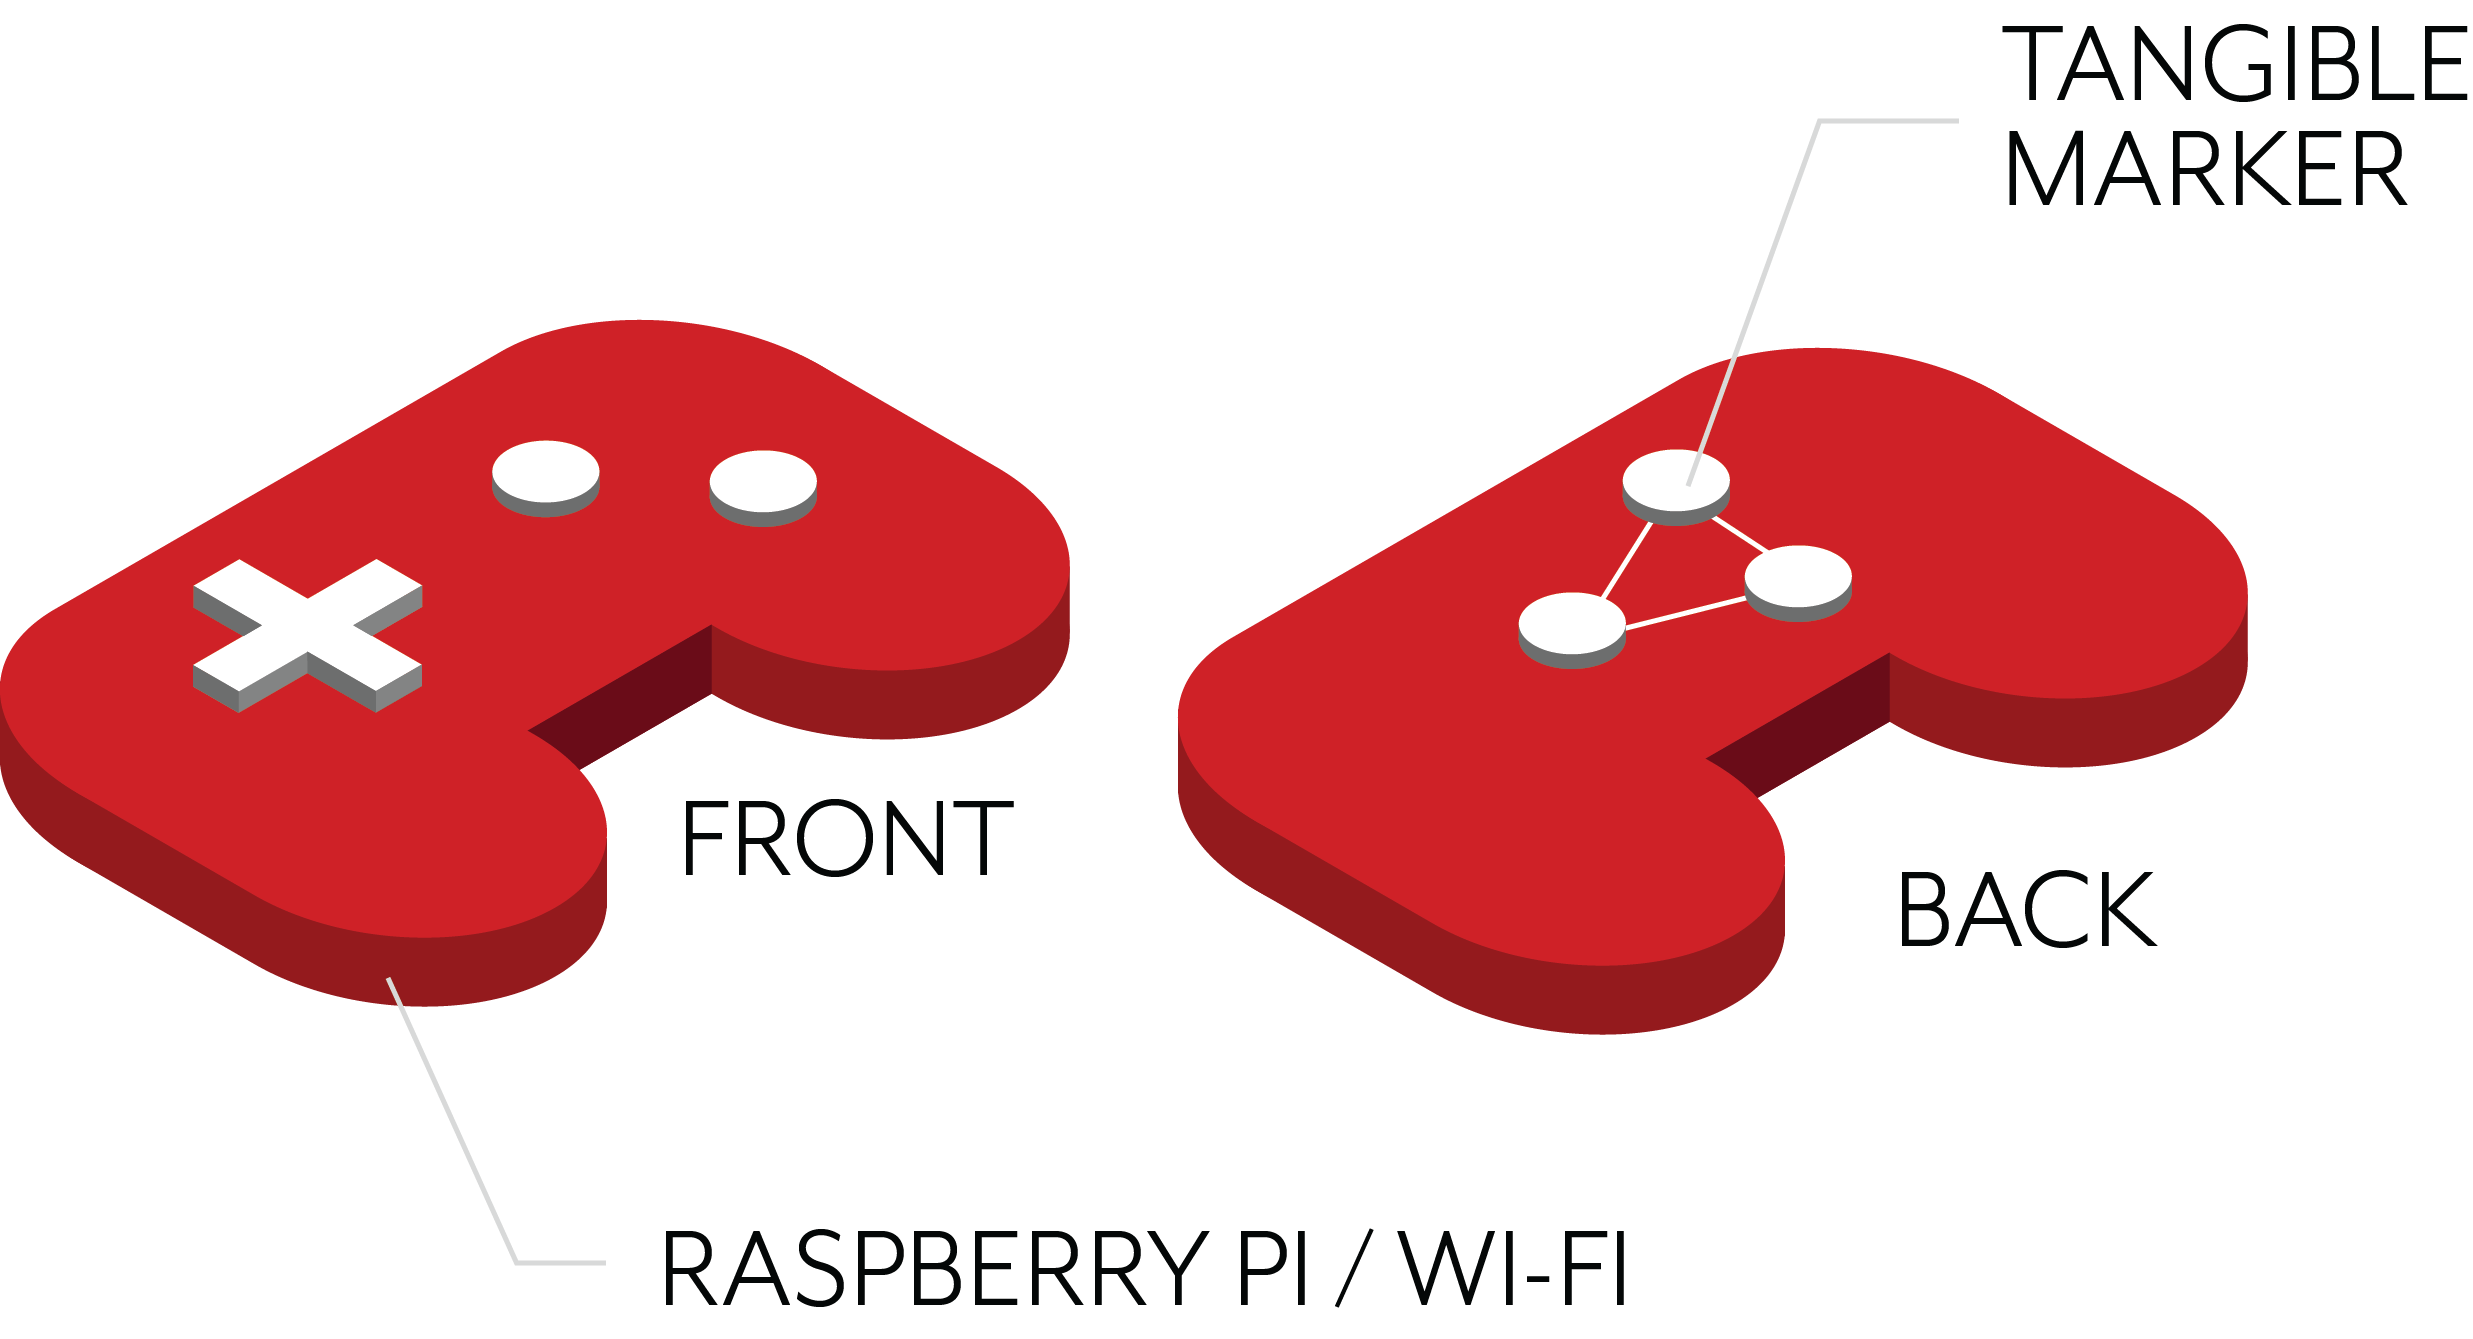 Custom controllers for launch station